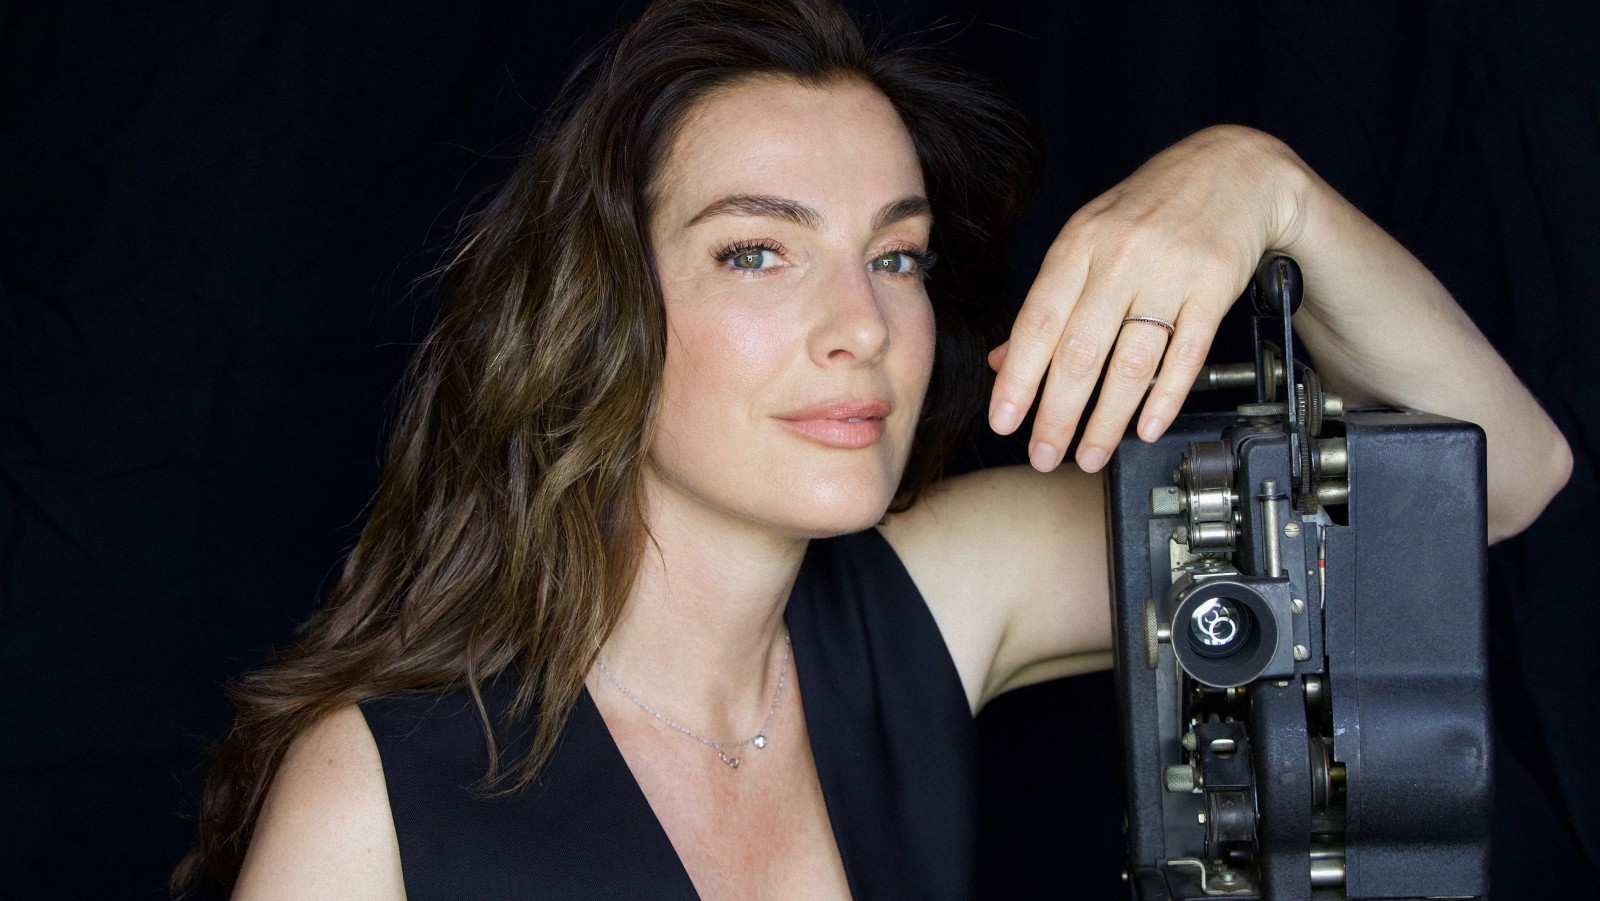 Israeli Stars Rise in Hollywood—and it's not just Gail Gadot and Natalie Portman